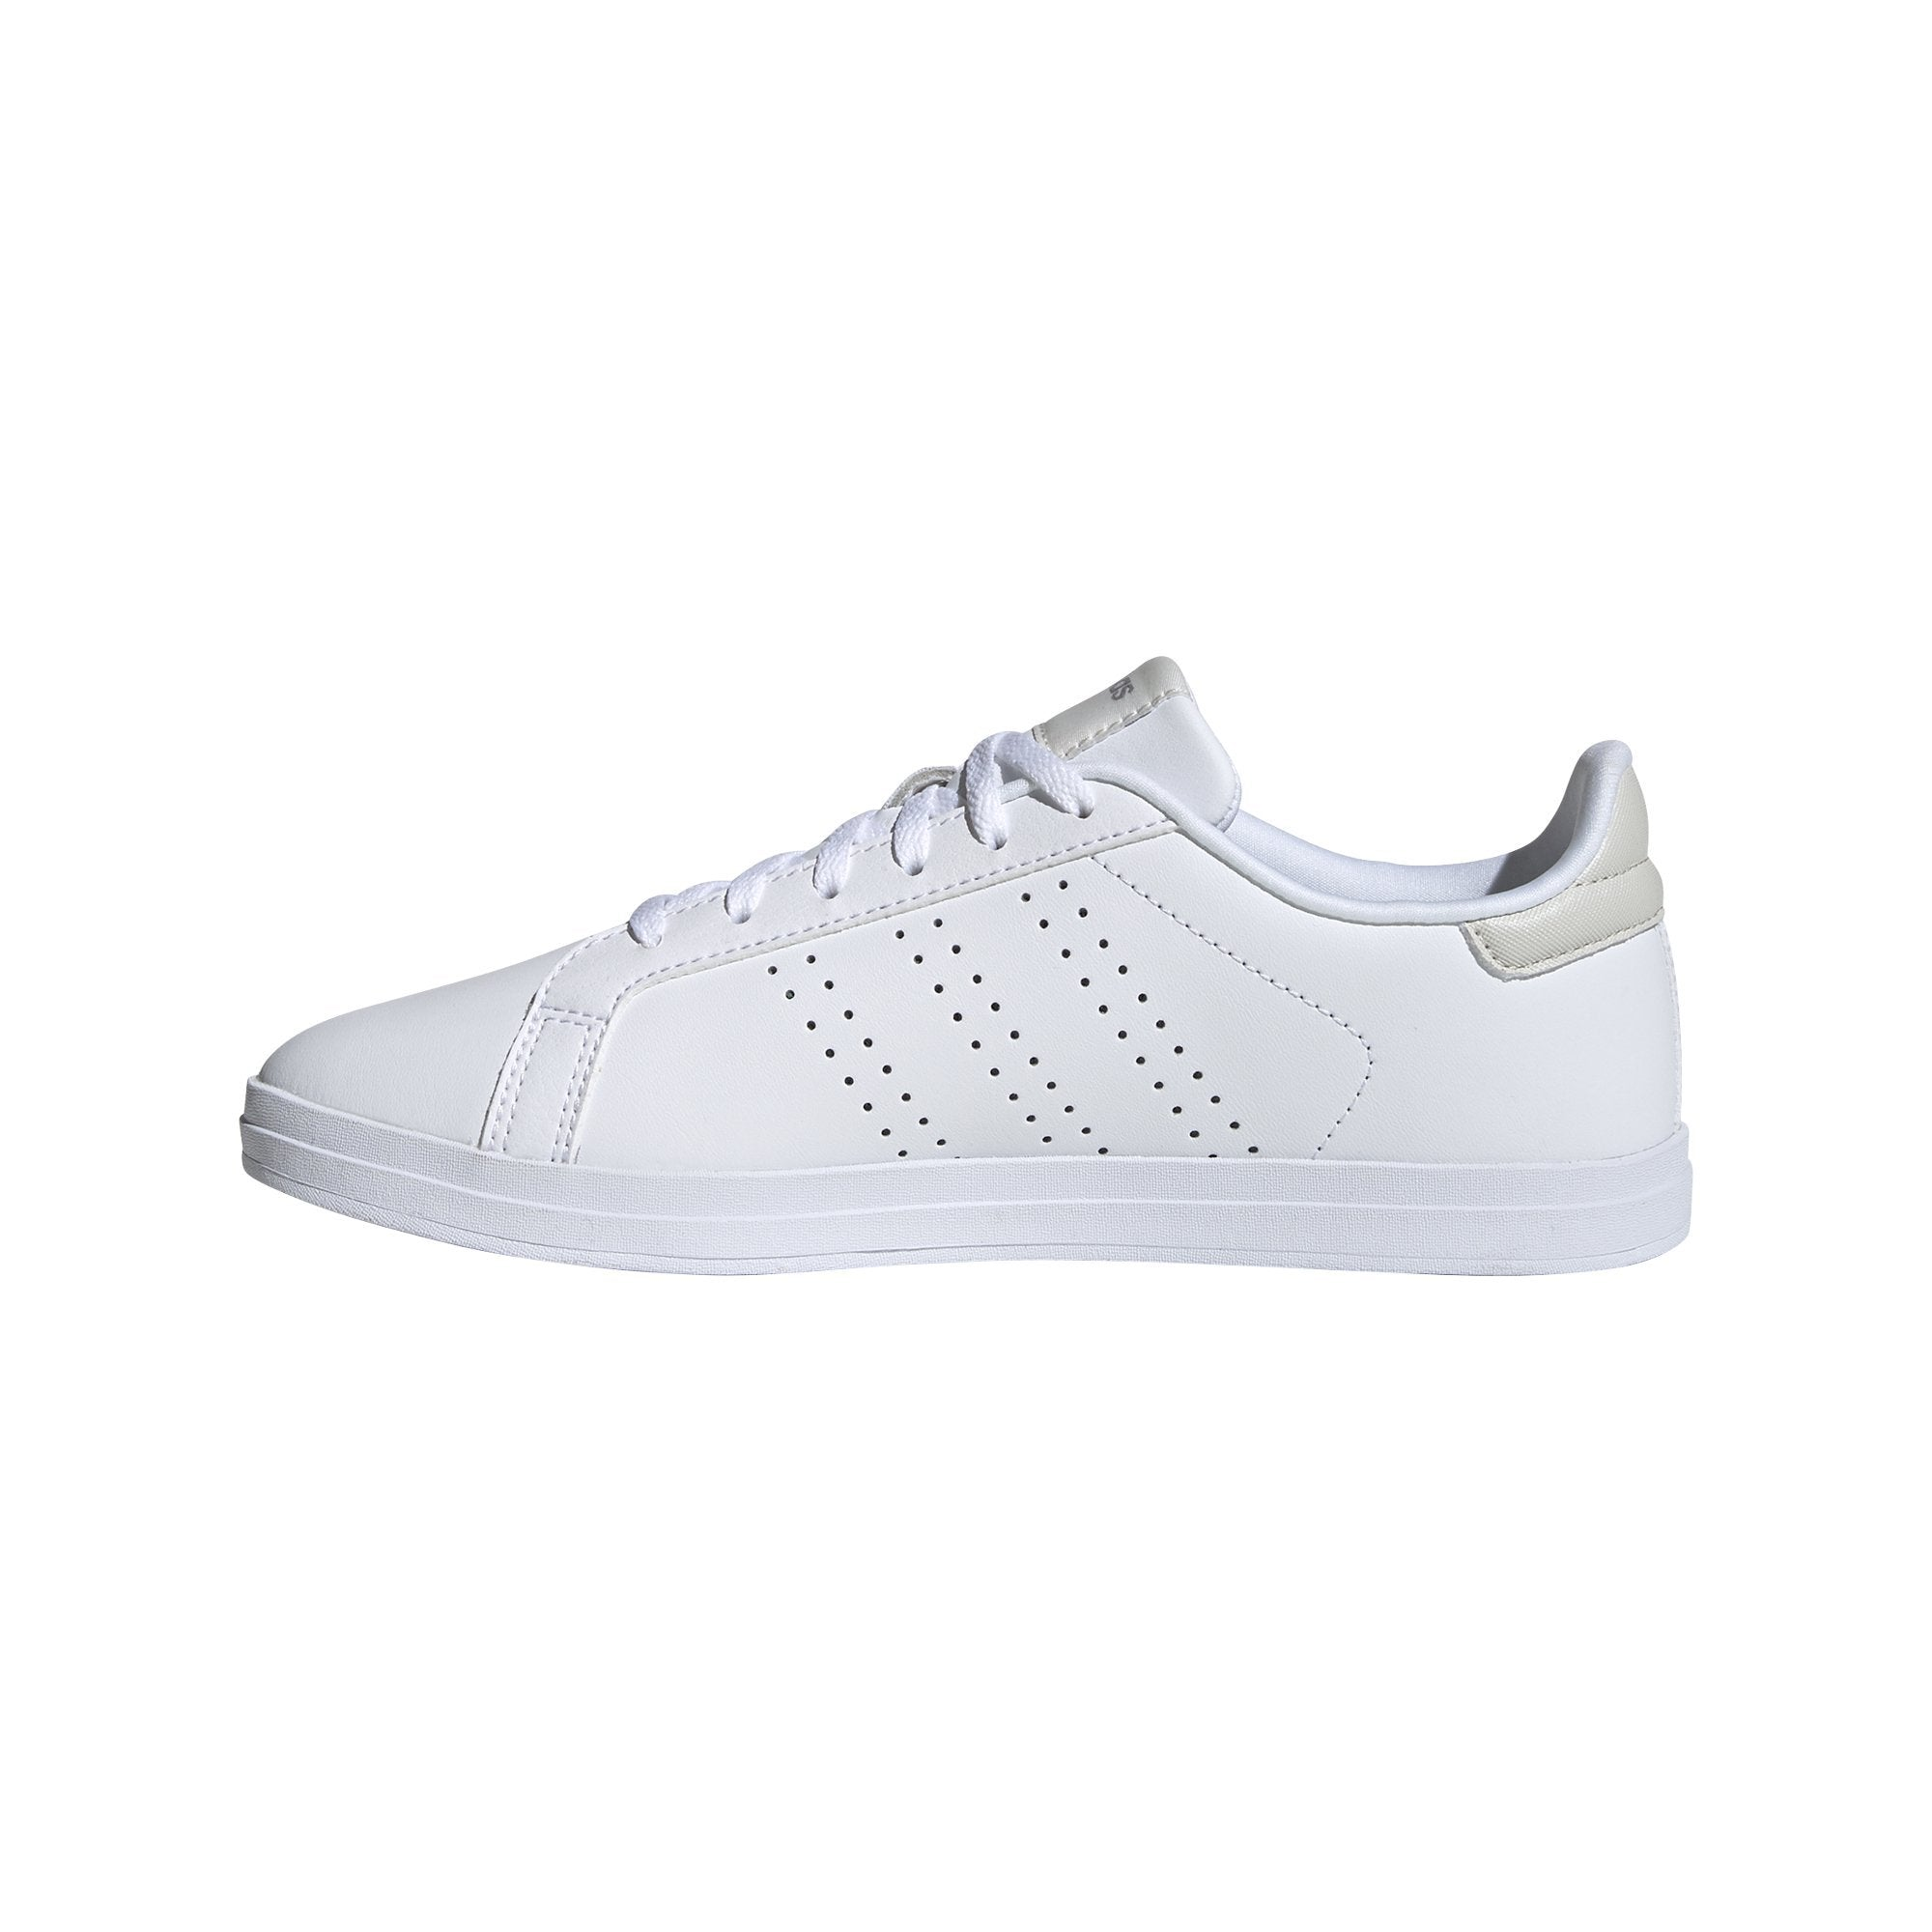 Adidas Womens Courtpoint CL X Shoes - Ftwr White/Ftwr White/Orbit Grey SP-Footwear-Womens Adidas